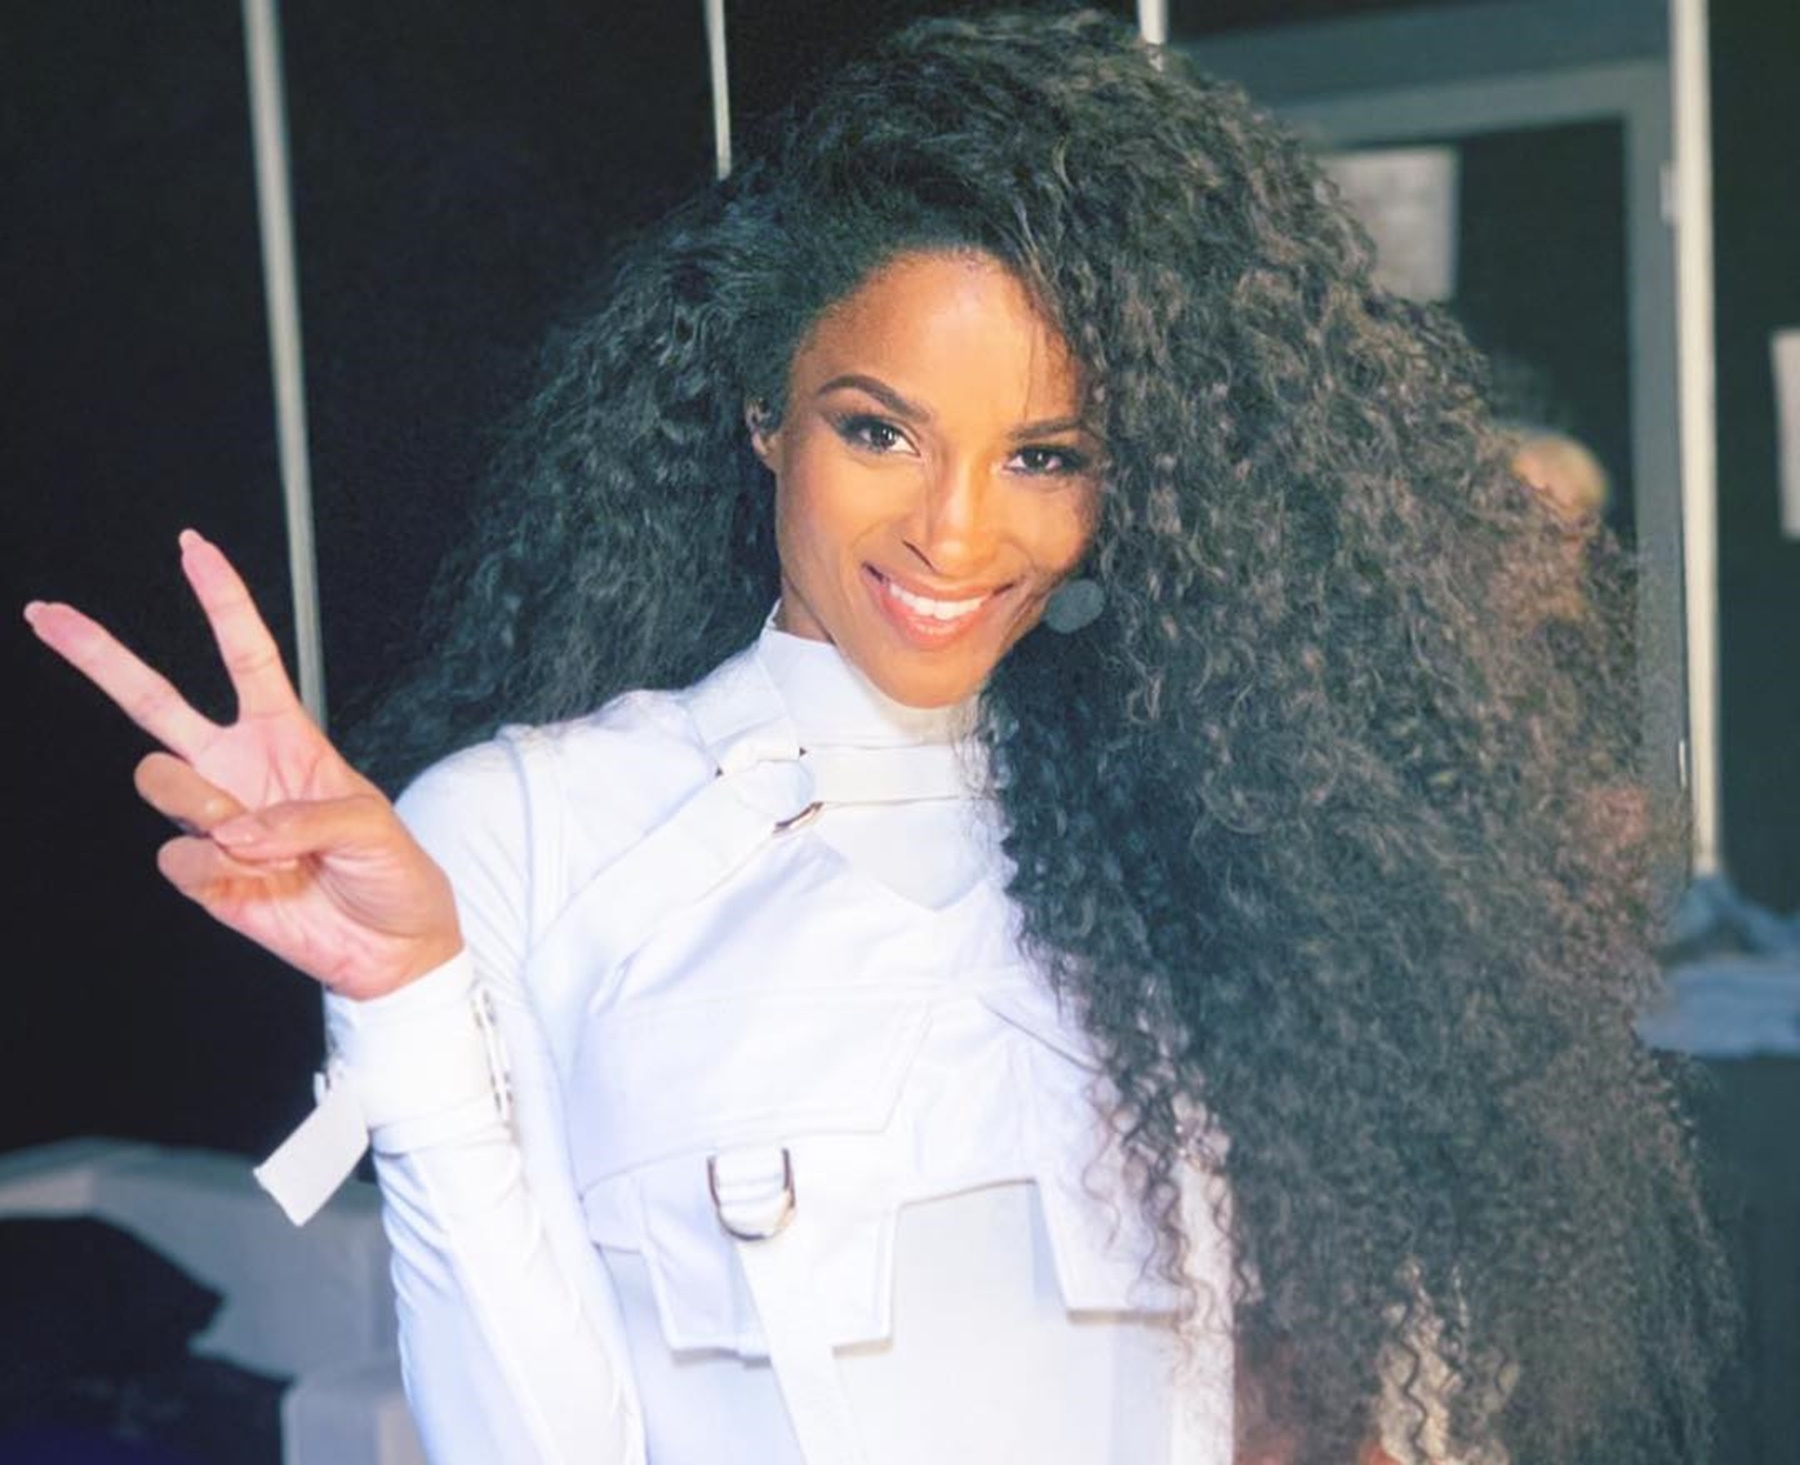 ciara-leaves-little-to-the-imagination-on-the-cover-of-beauty-marks-album